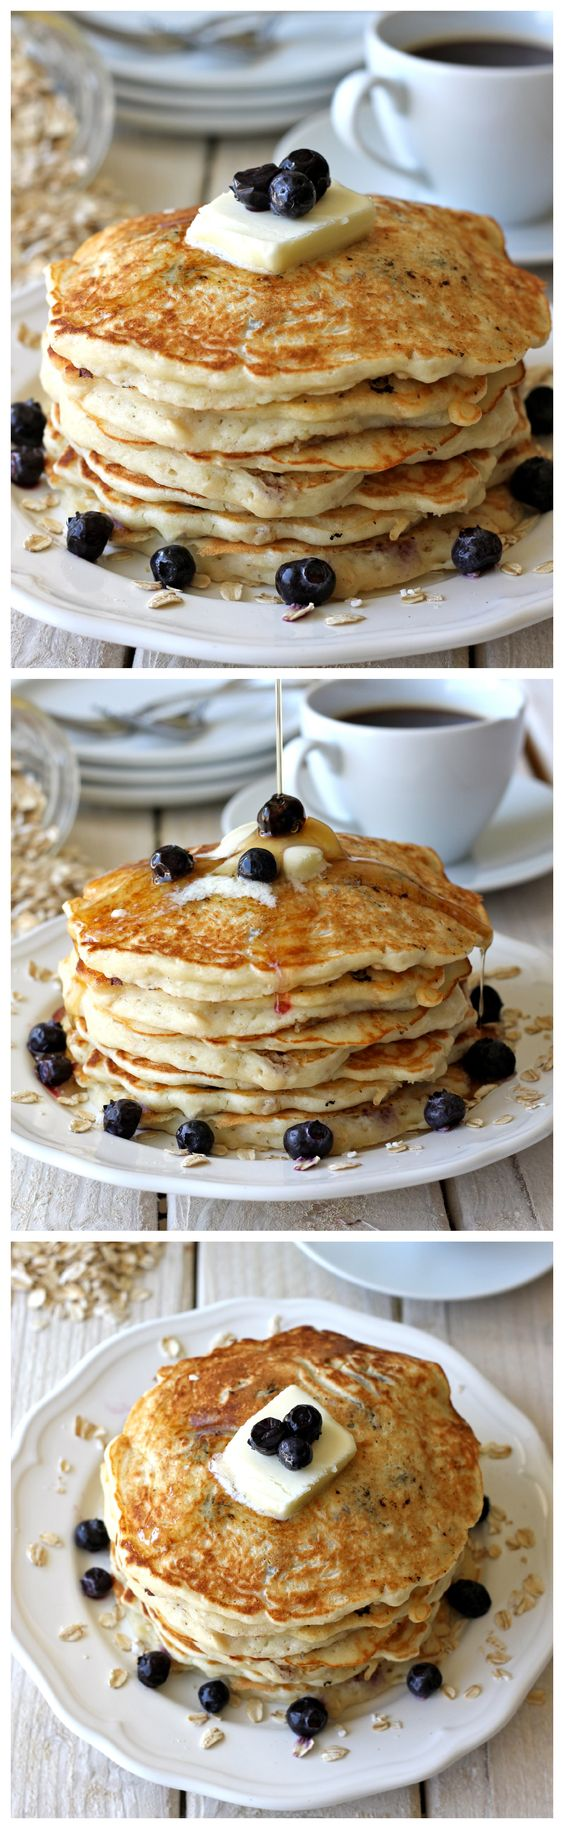 Blueberry #Oatmeal Yogurt #Pancakes - Start your #mornings off right with these light and fluffy, #healthy pancakes chockfull of juicy #blueberries!